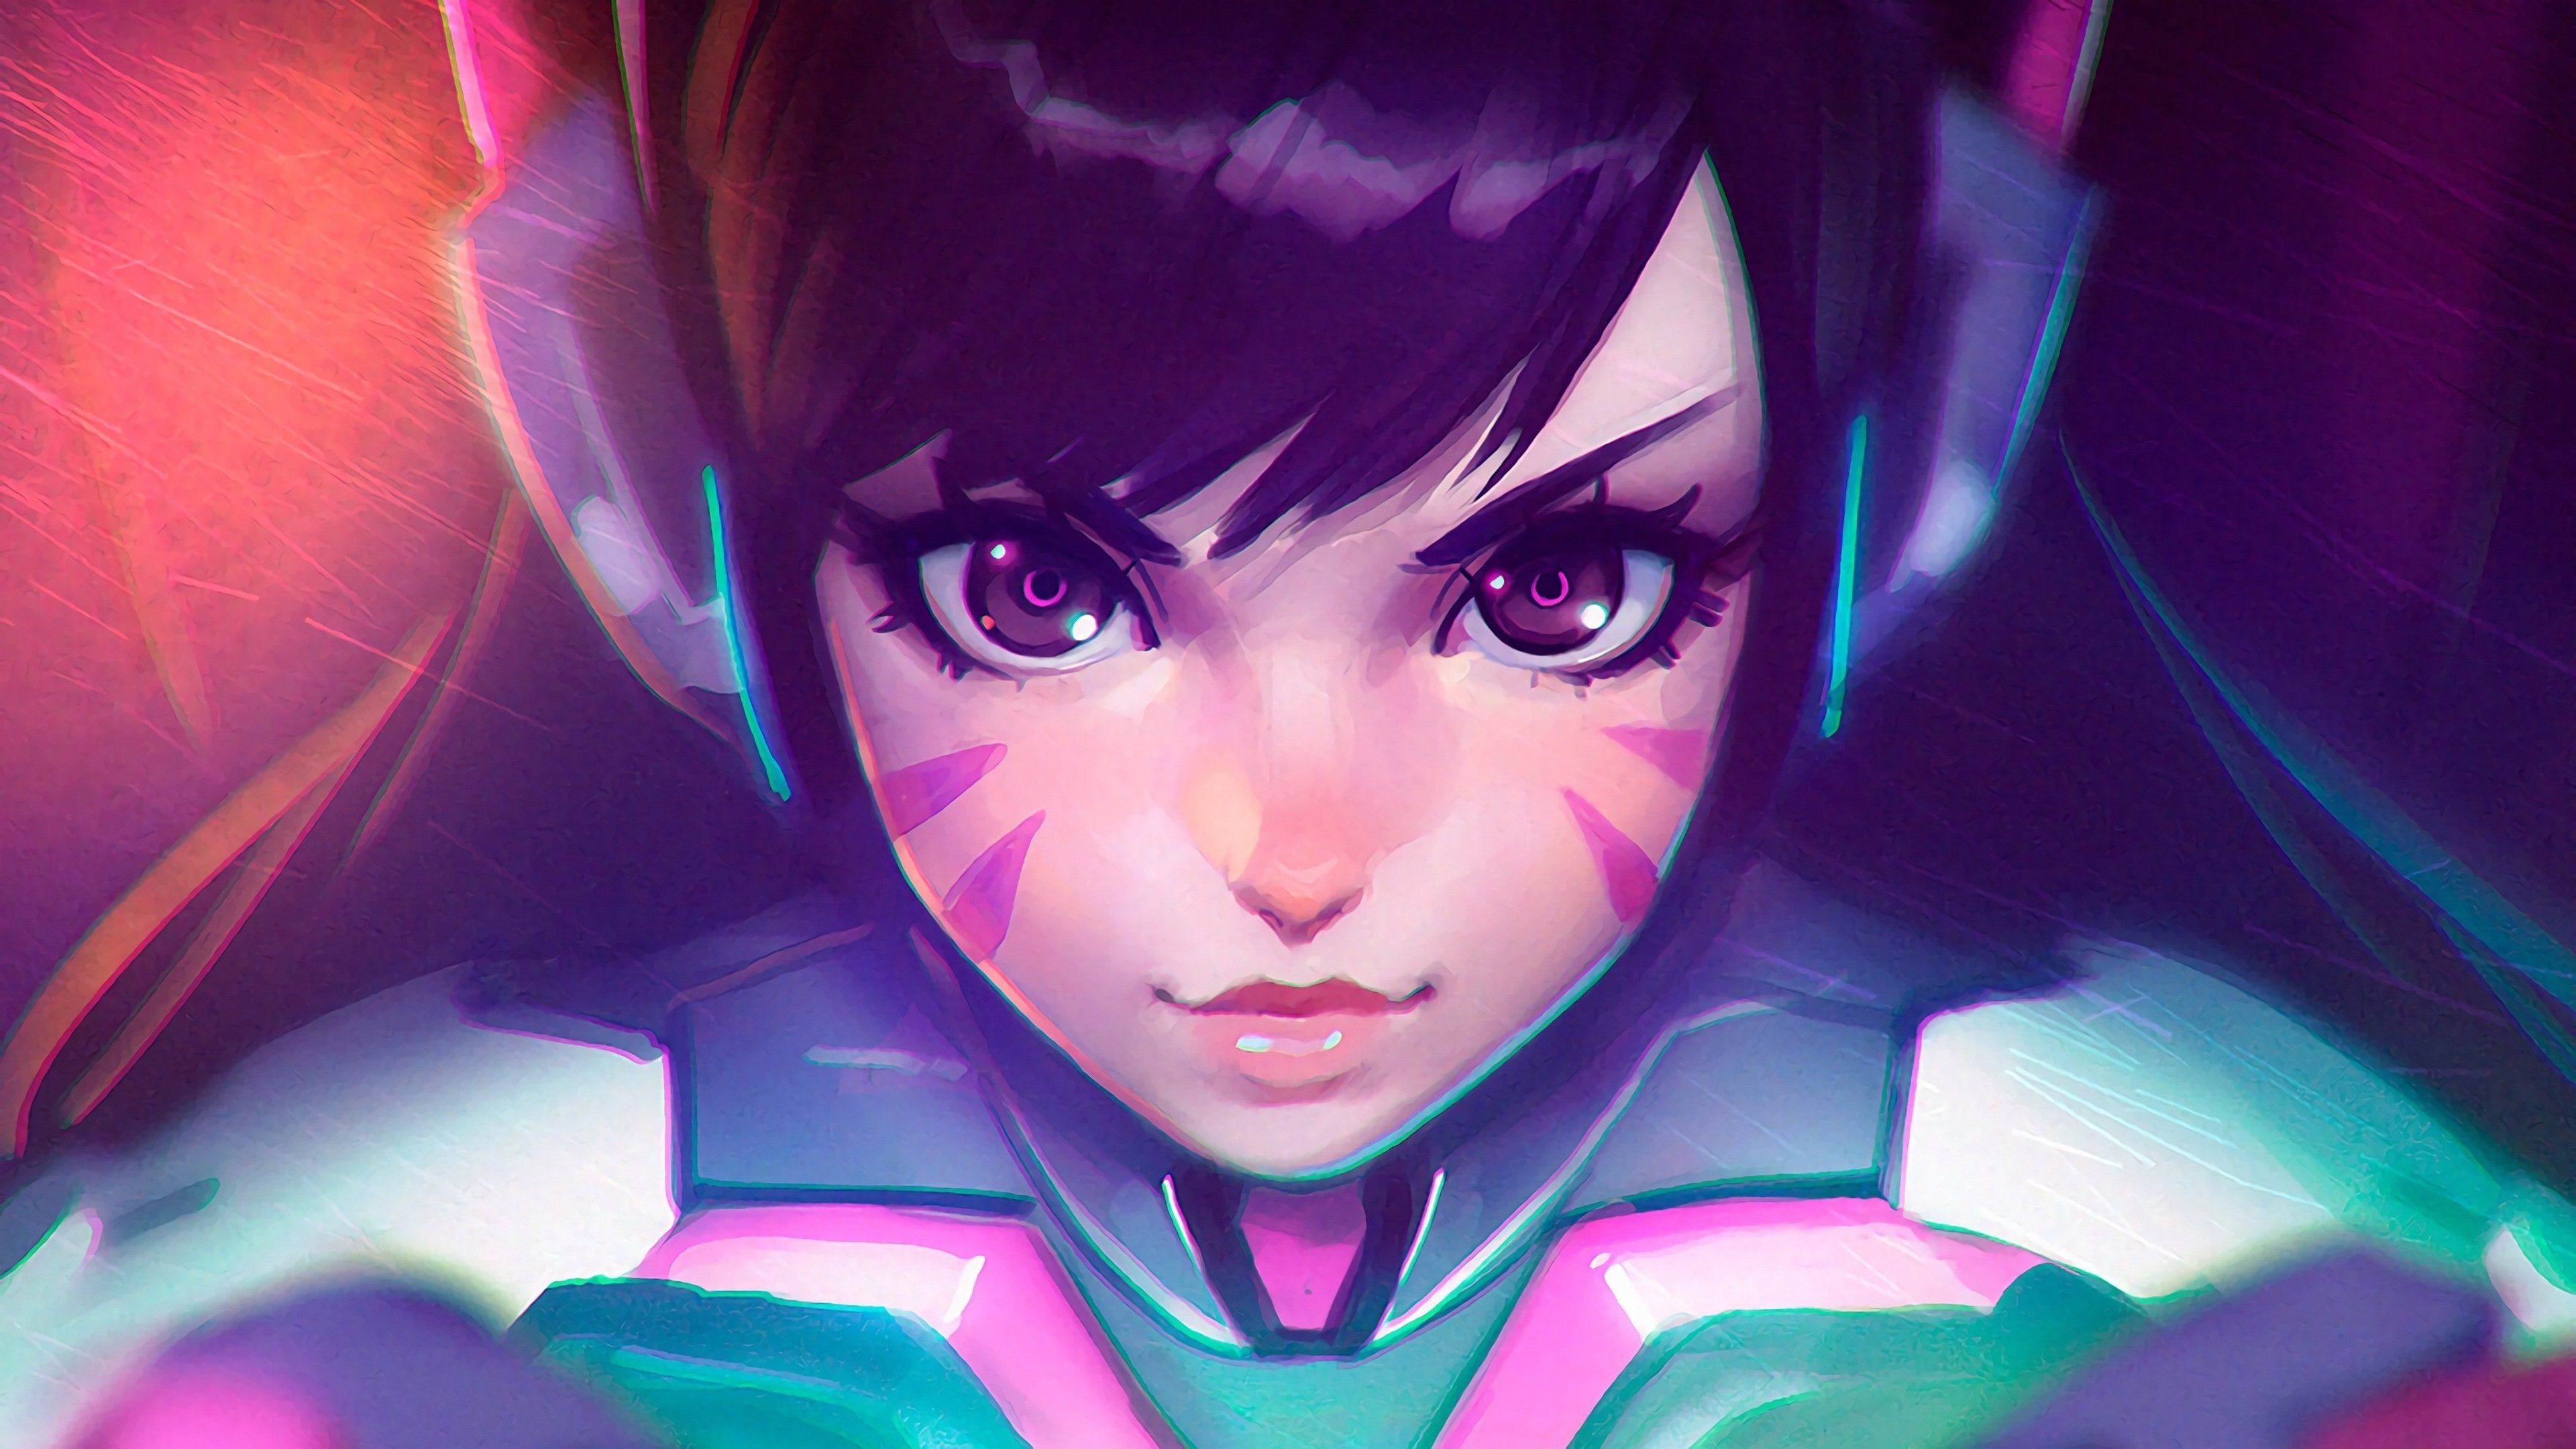 3840x2160 Dva Overwatch 4k Best Wallpaper For Desktop Background Overwatch Wallpapers Character Wallpaper Cartoon Wallpaper Hd